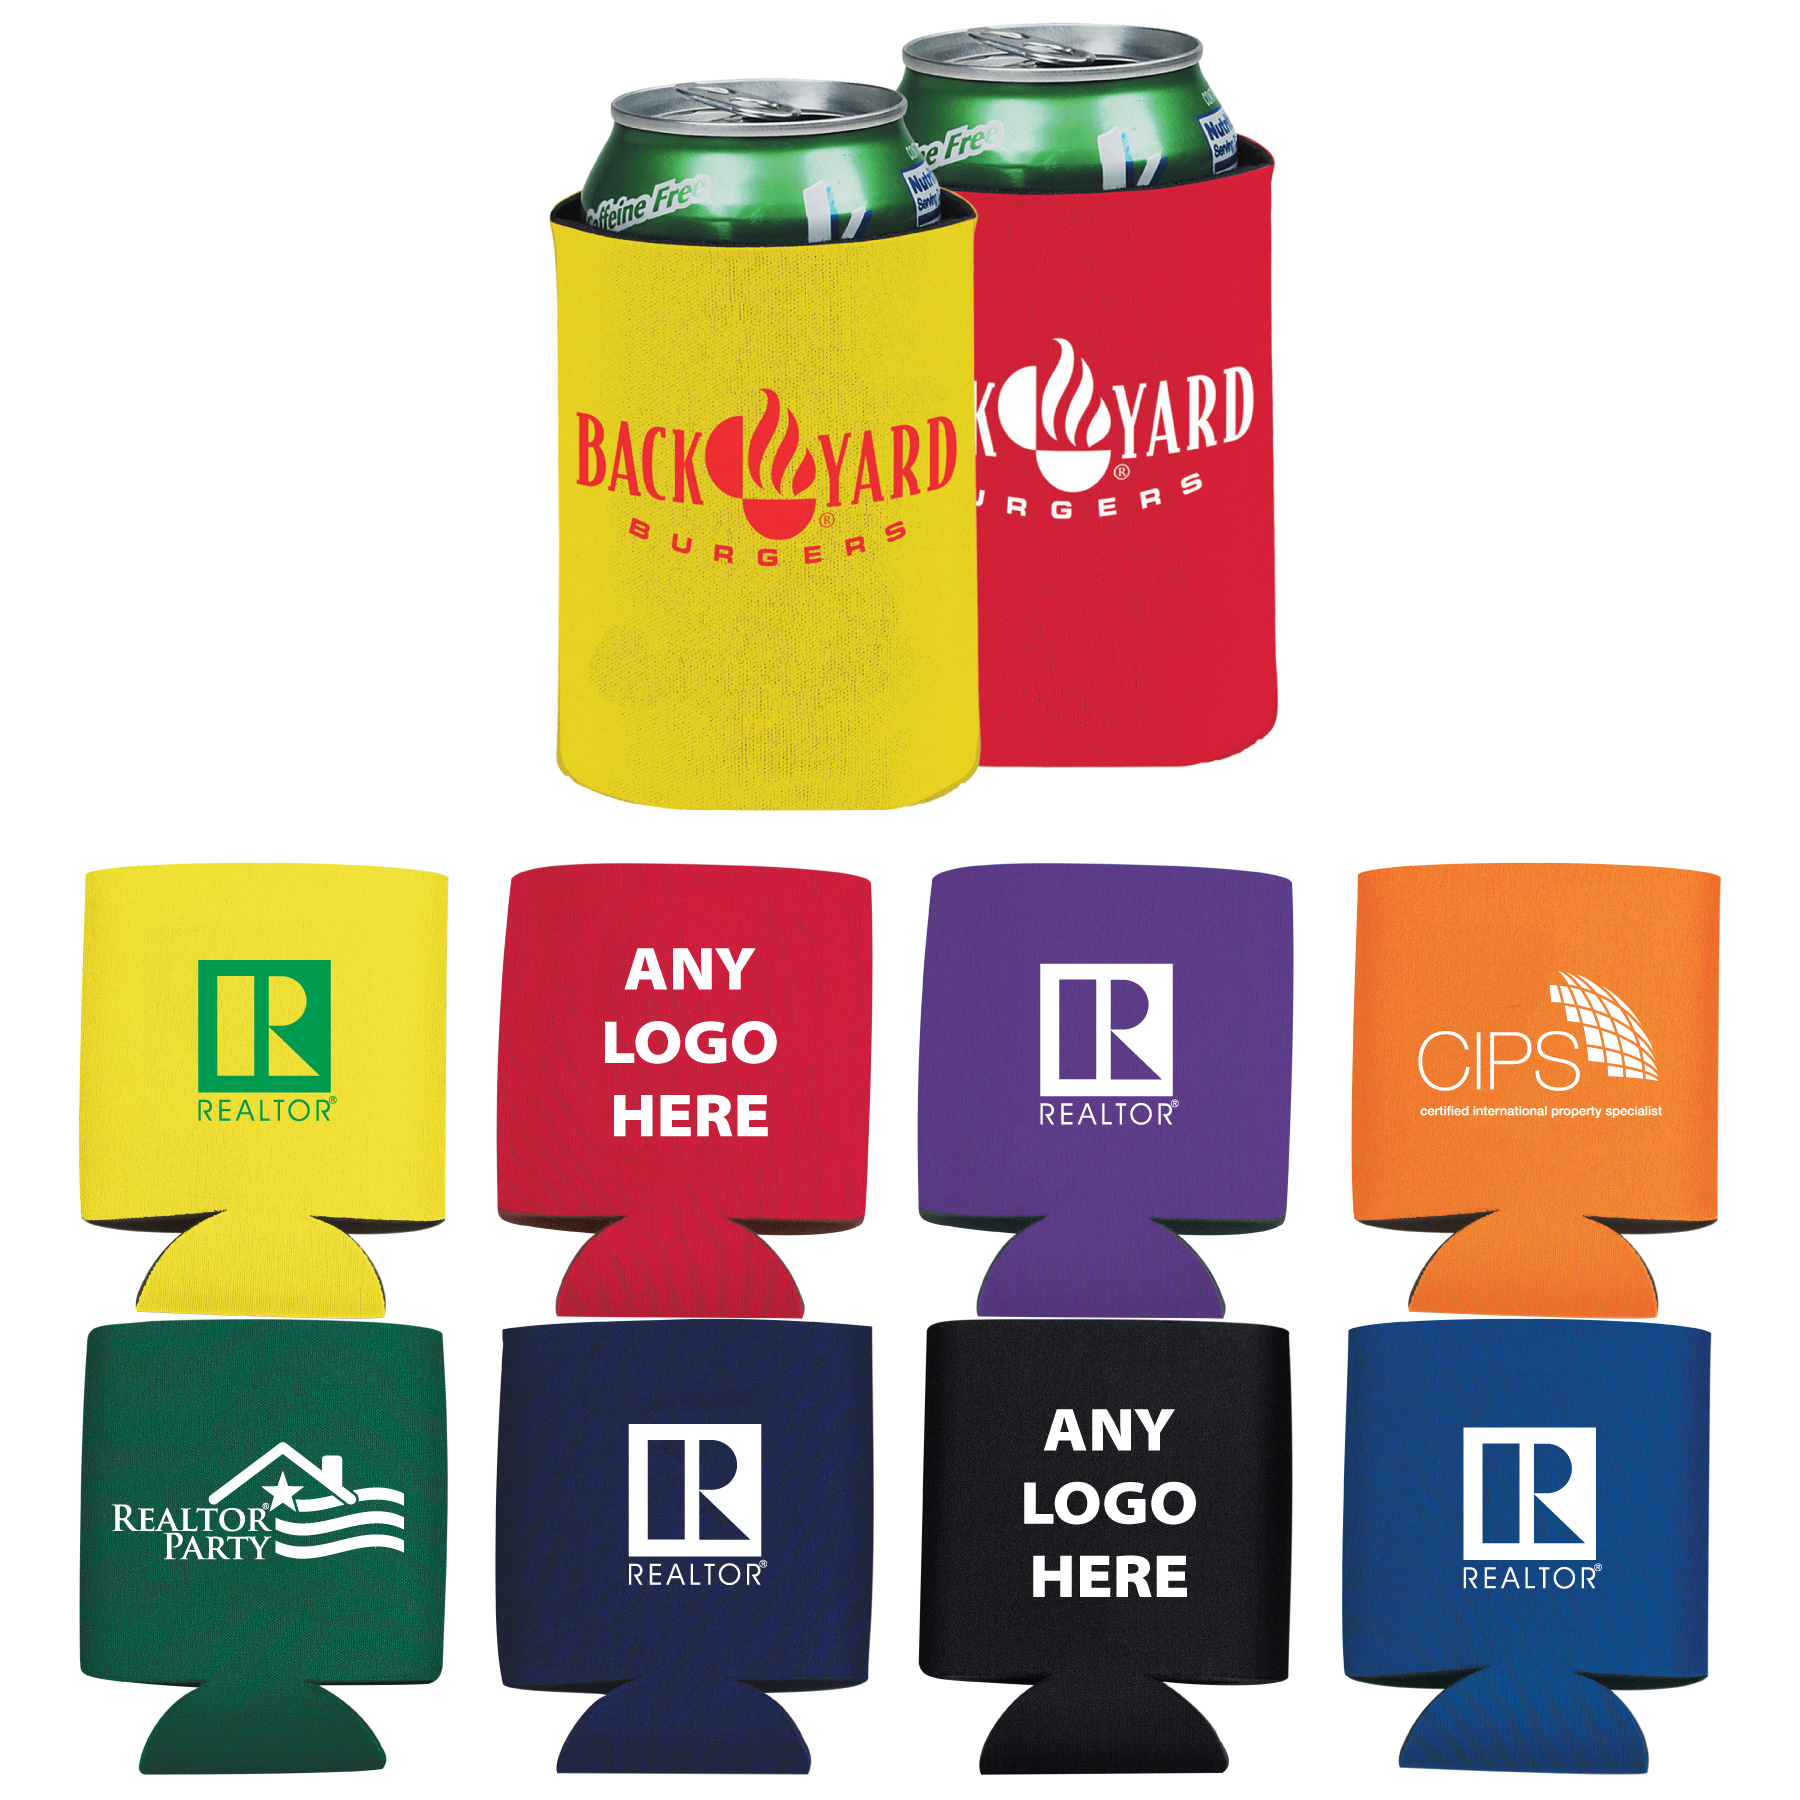 Collapsible Can Insulator (Special Order) Cups,Mugs,Tumblers,Drinks,Drinkwares,glasses,glass,koozies,coozies,coosies,huggies,insulators,foam,cans,custom